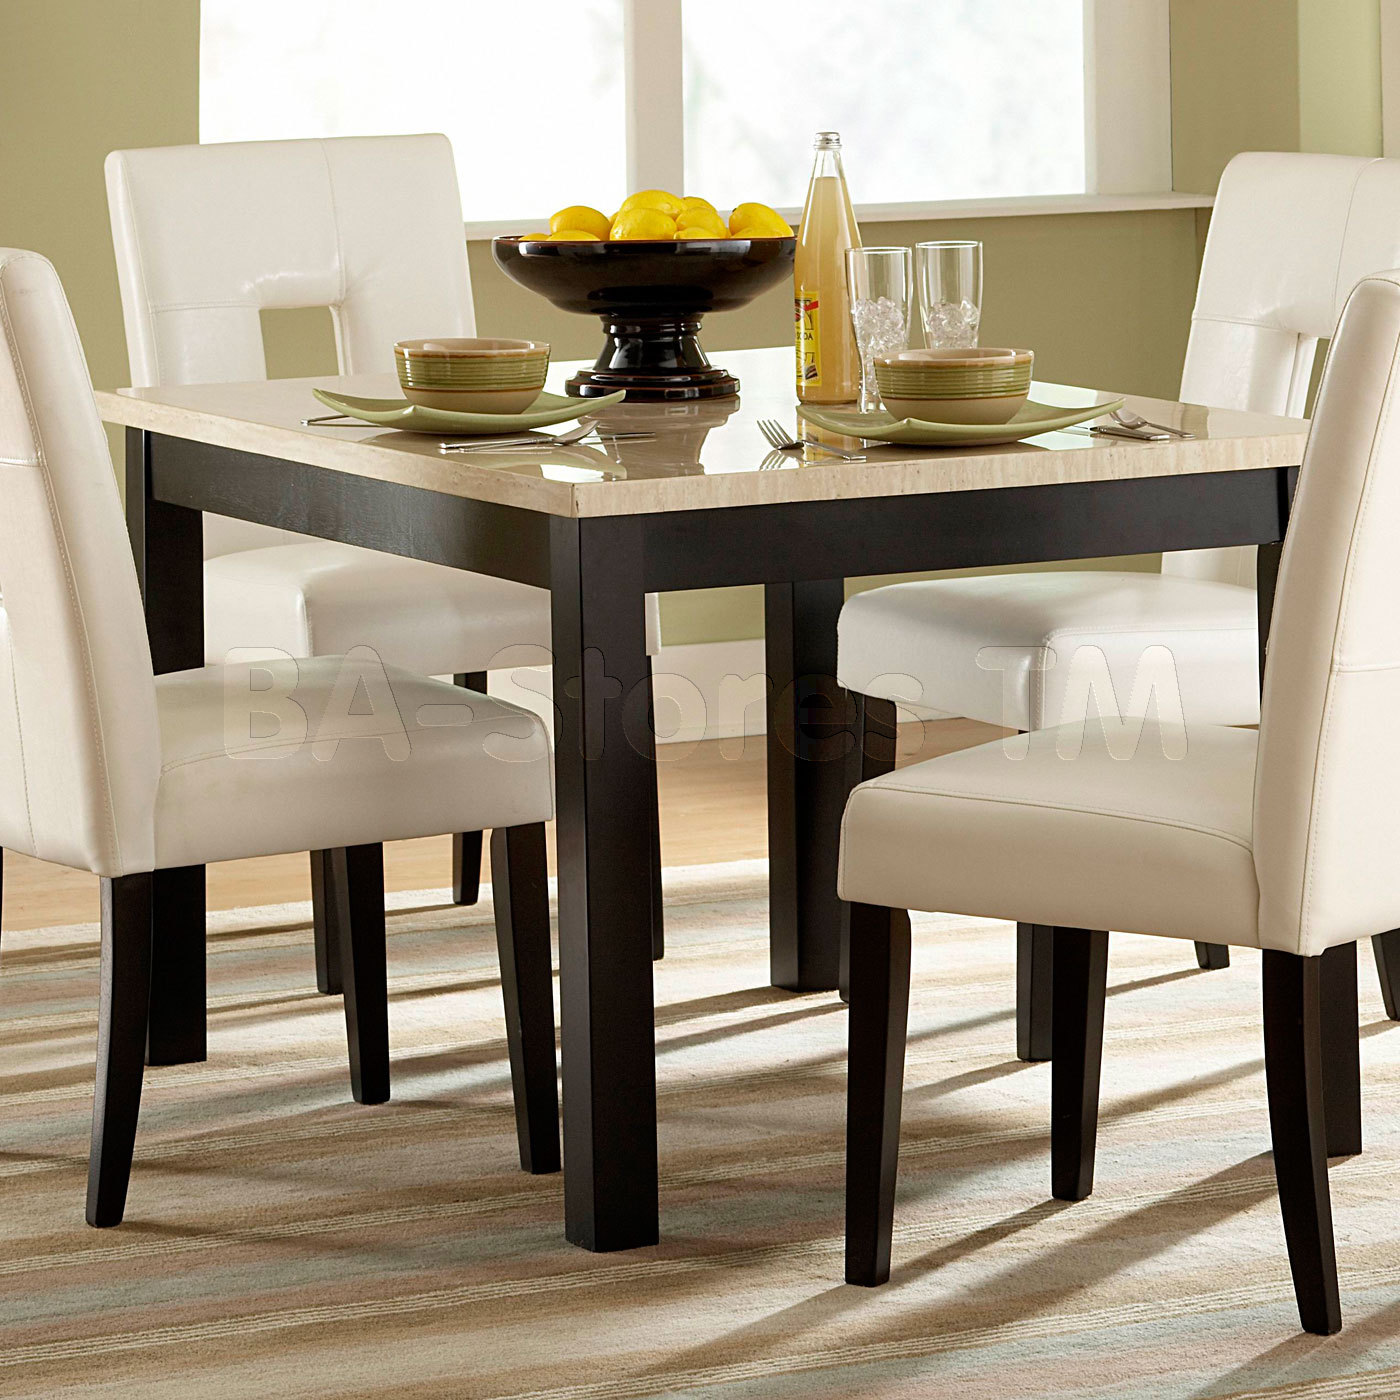 Dining Table Chairs Only: Square Dining Table For 4